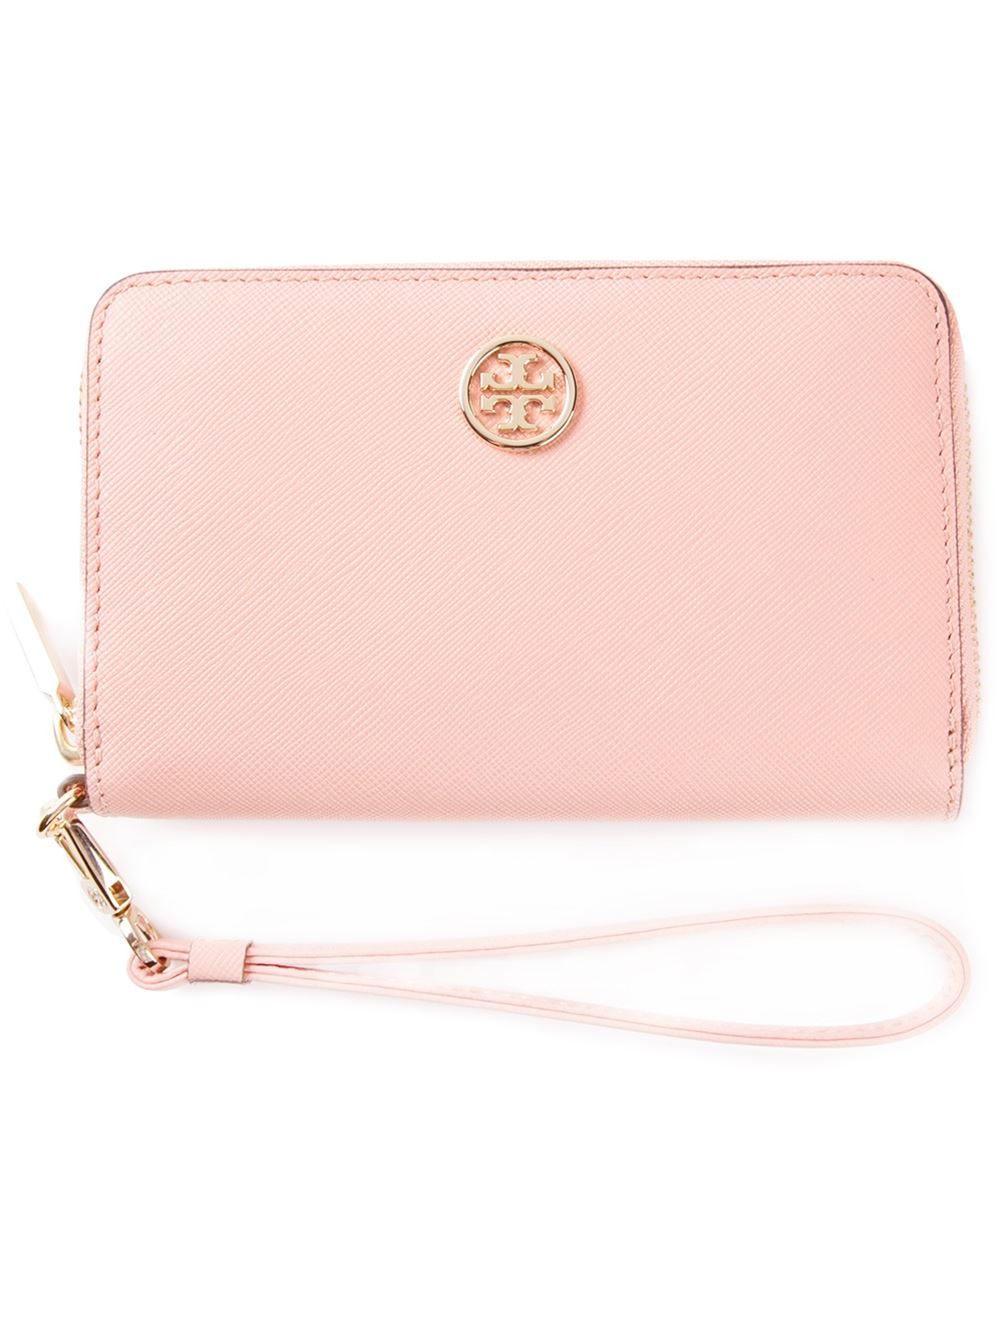 Lyst Tory Burch Robinson Smartphone Wristlet In Pink